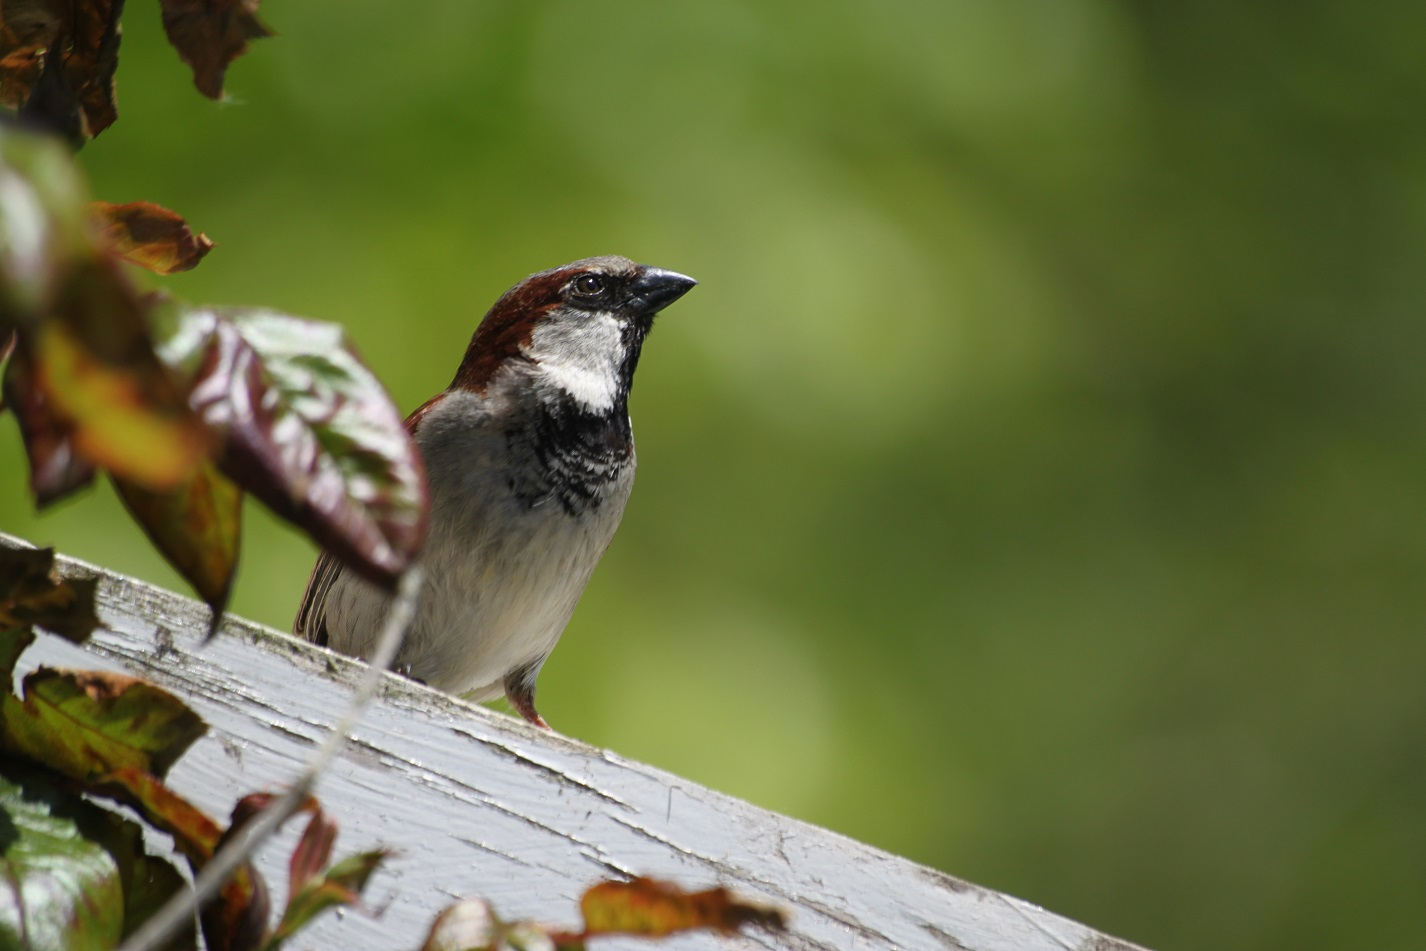 One Thing Big Garden Birdwatch Has Shown Is That Our Abundant Species Can Never Be Taken For Granted The Humble House Sparrow May Consistently Top